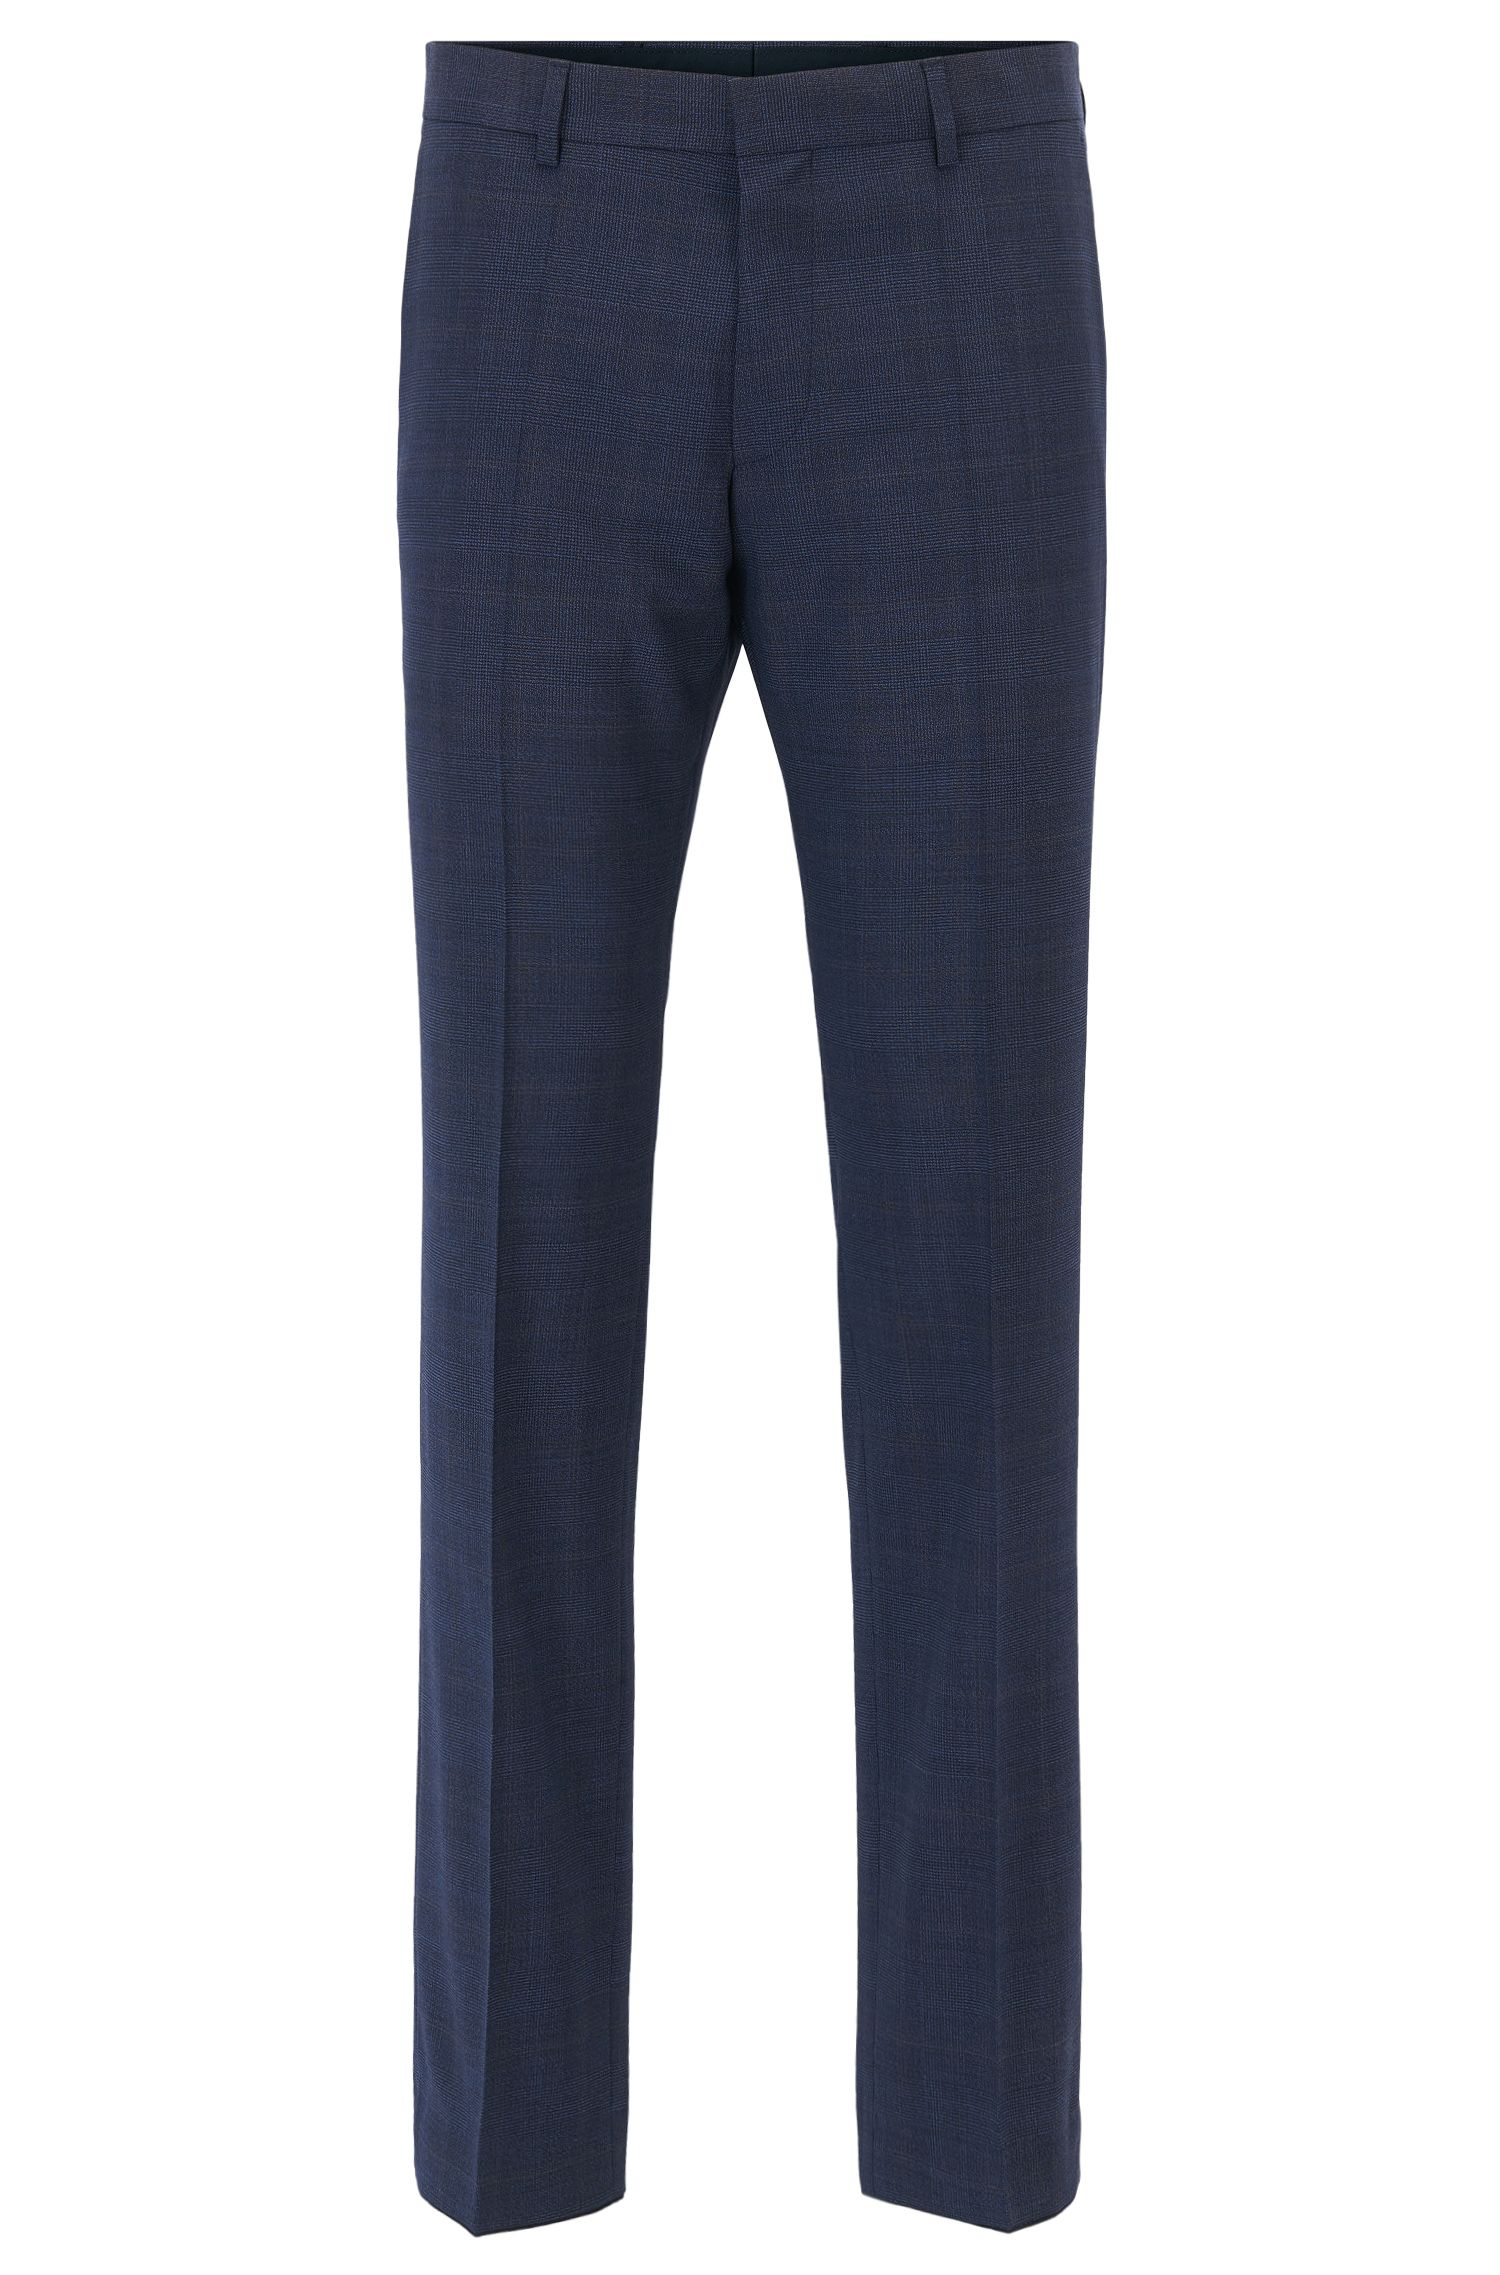 Plaid Virgin Wool Dress Pant, Slim Fit | Genesis, Dark Blue